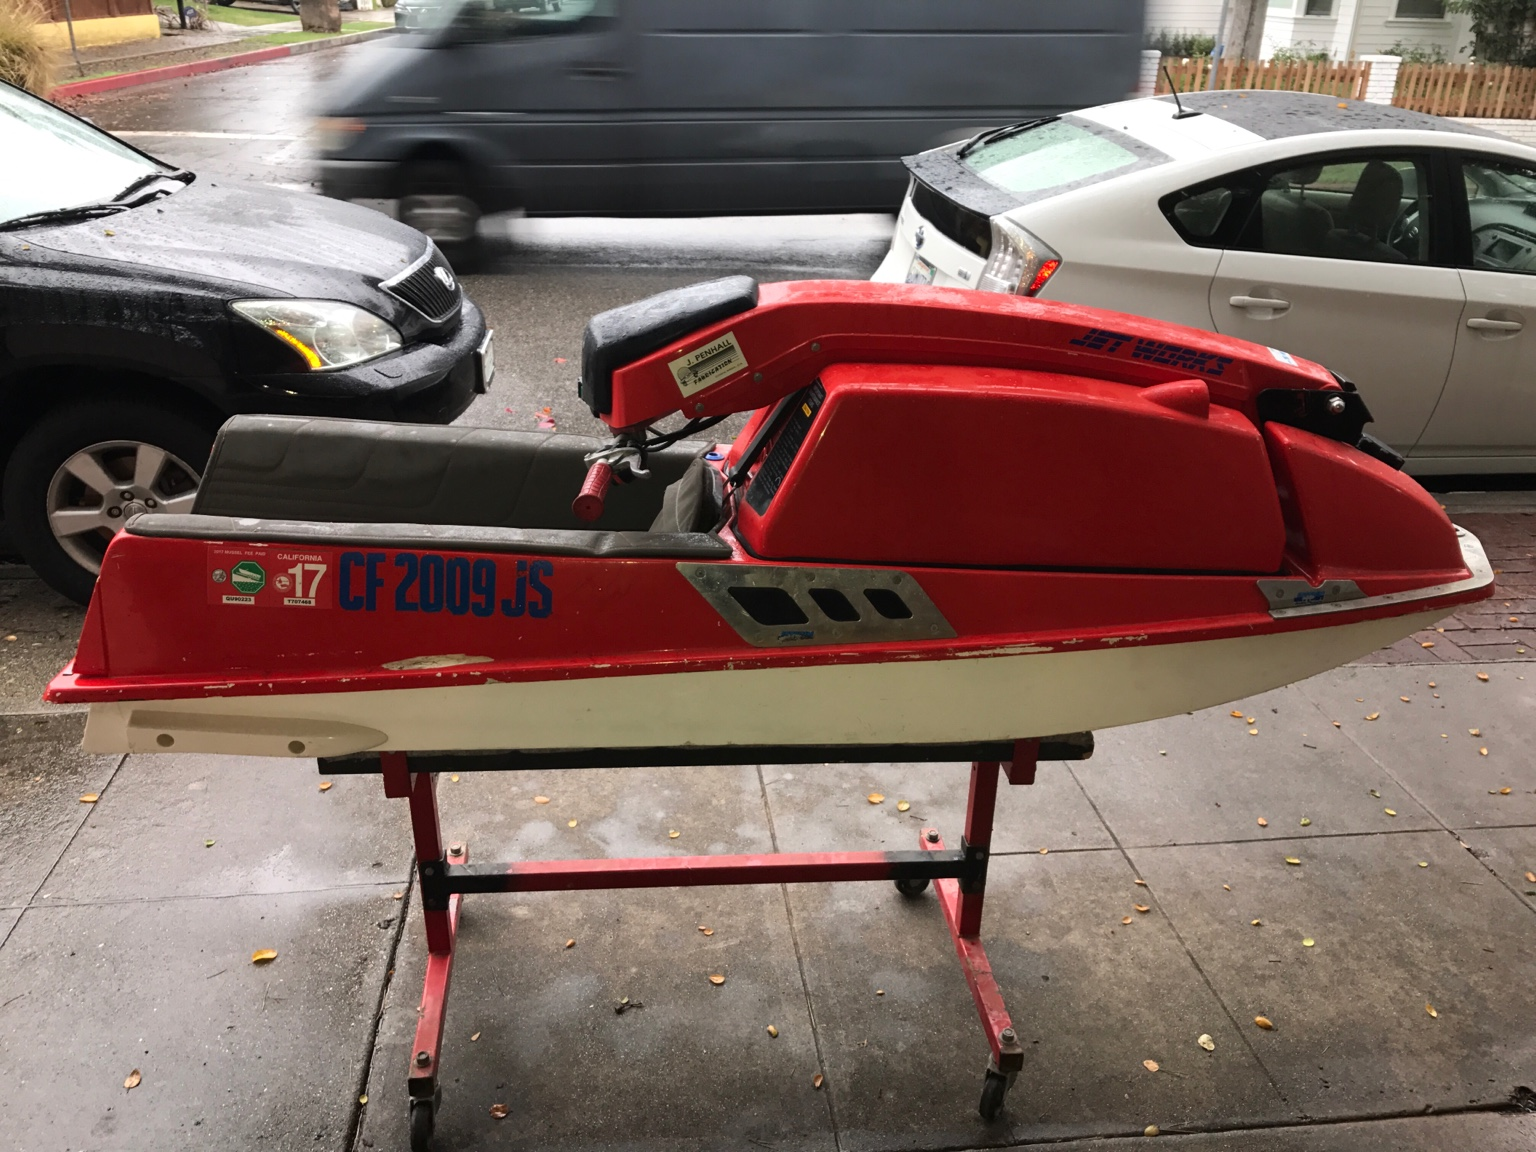 Has clean California title and registration. Very nice ski.